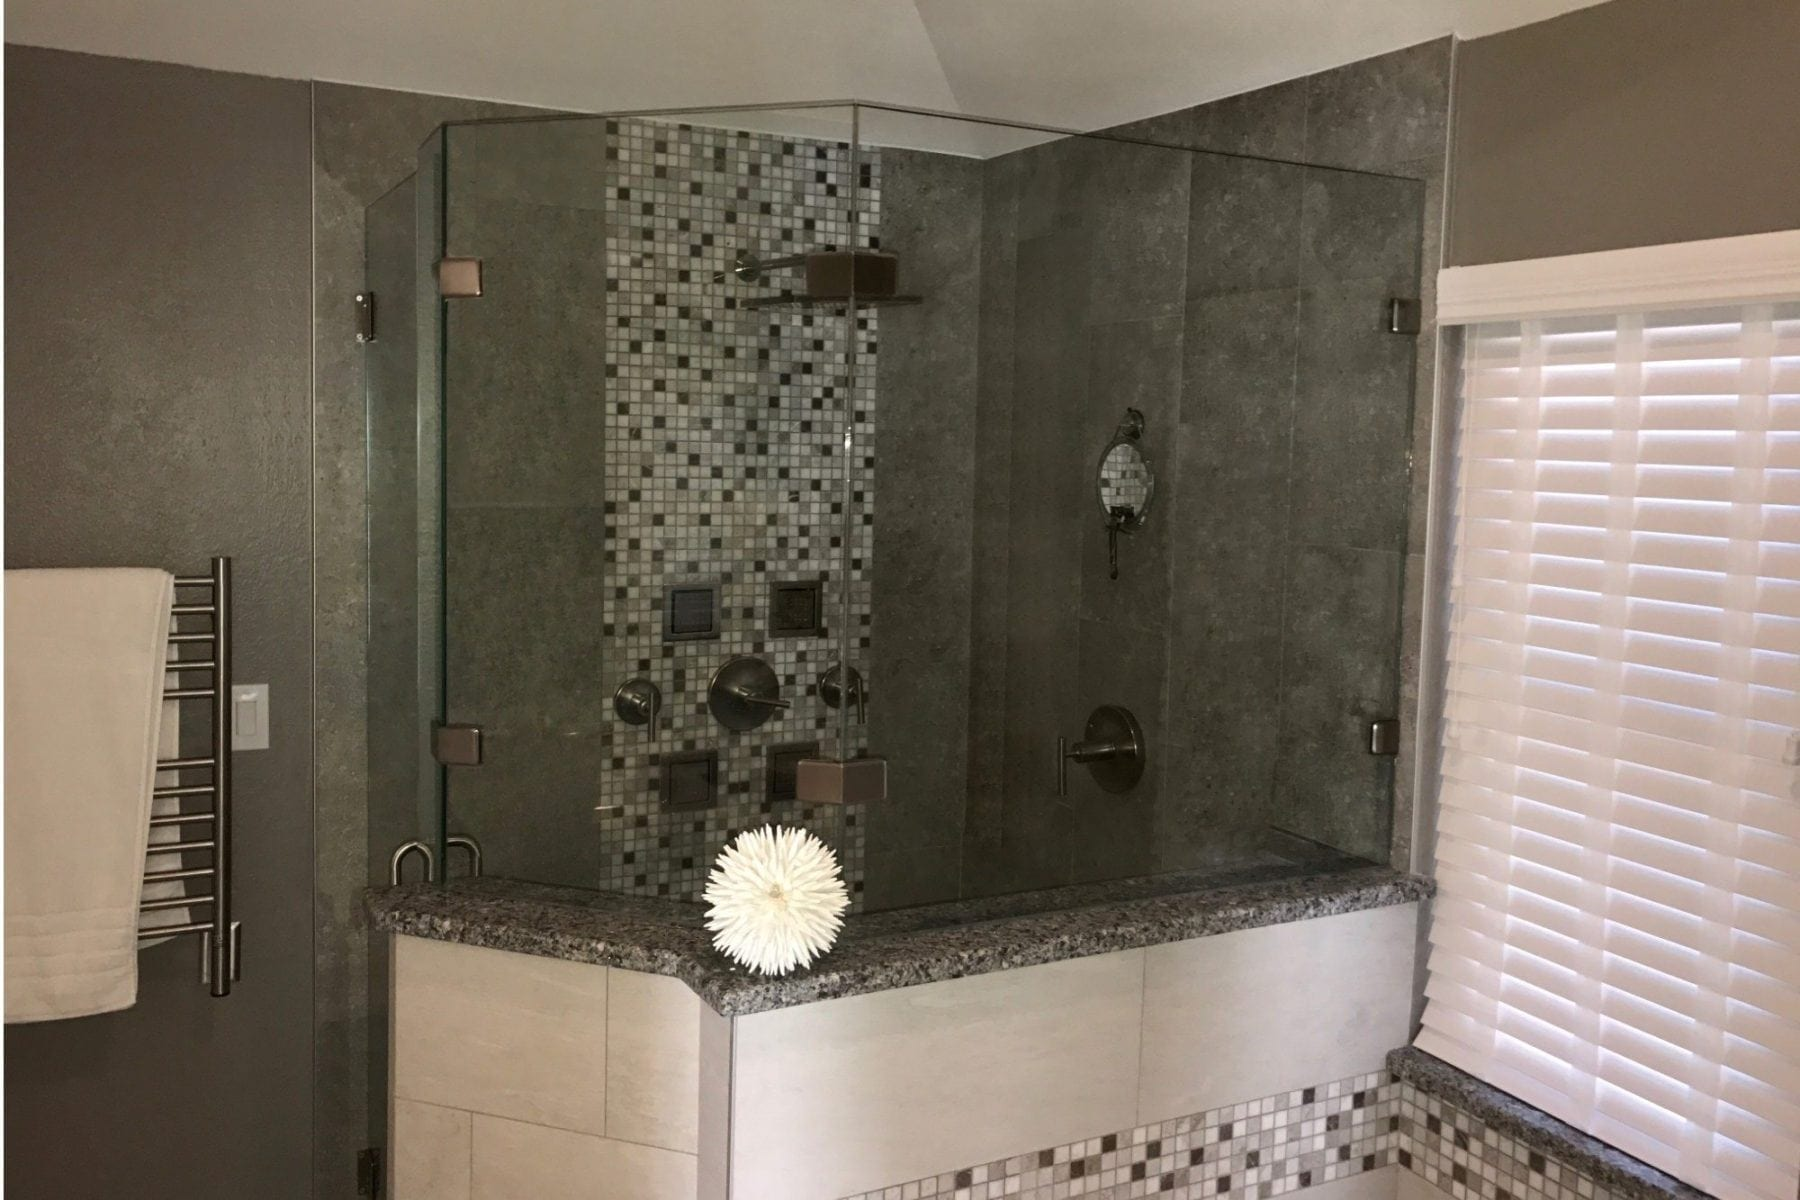 Condo Bathroom Remodel oak-lawn-condo-bathroom-remodel-after-renovation-shower - renowned